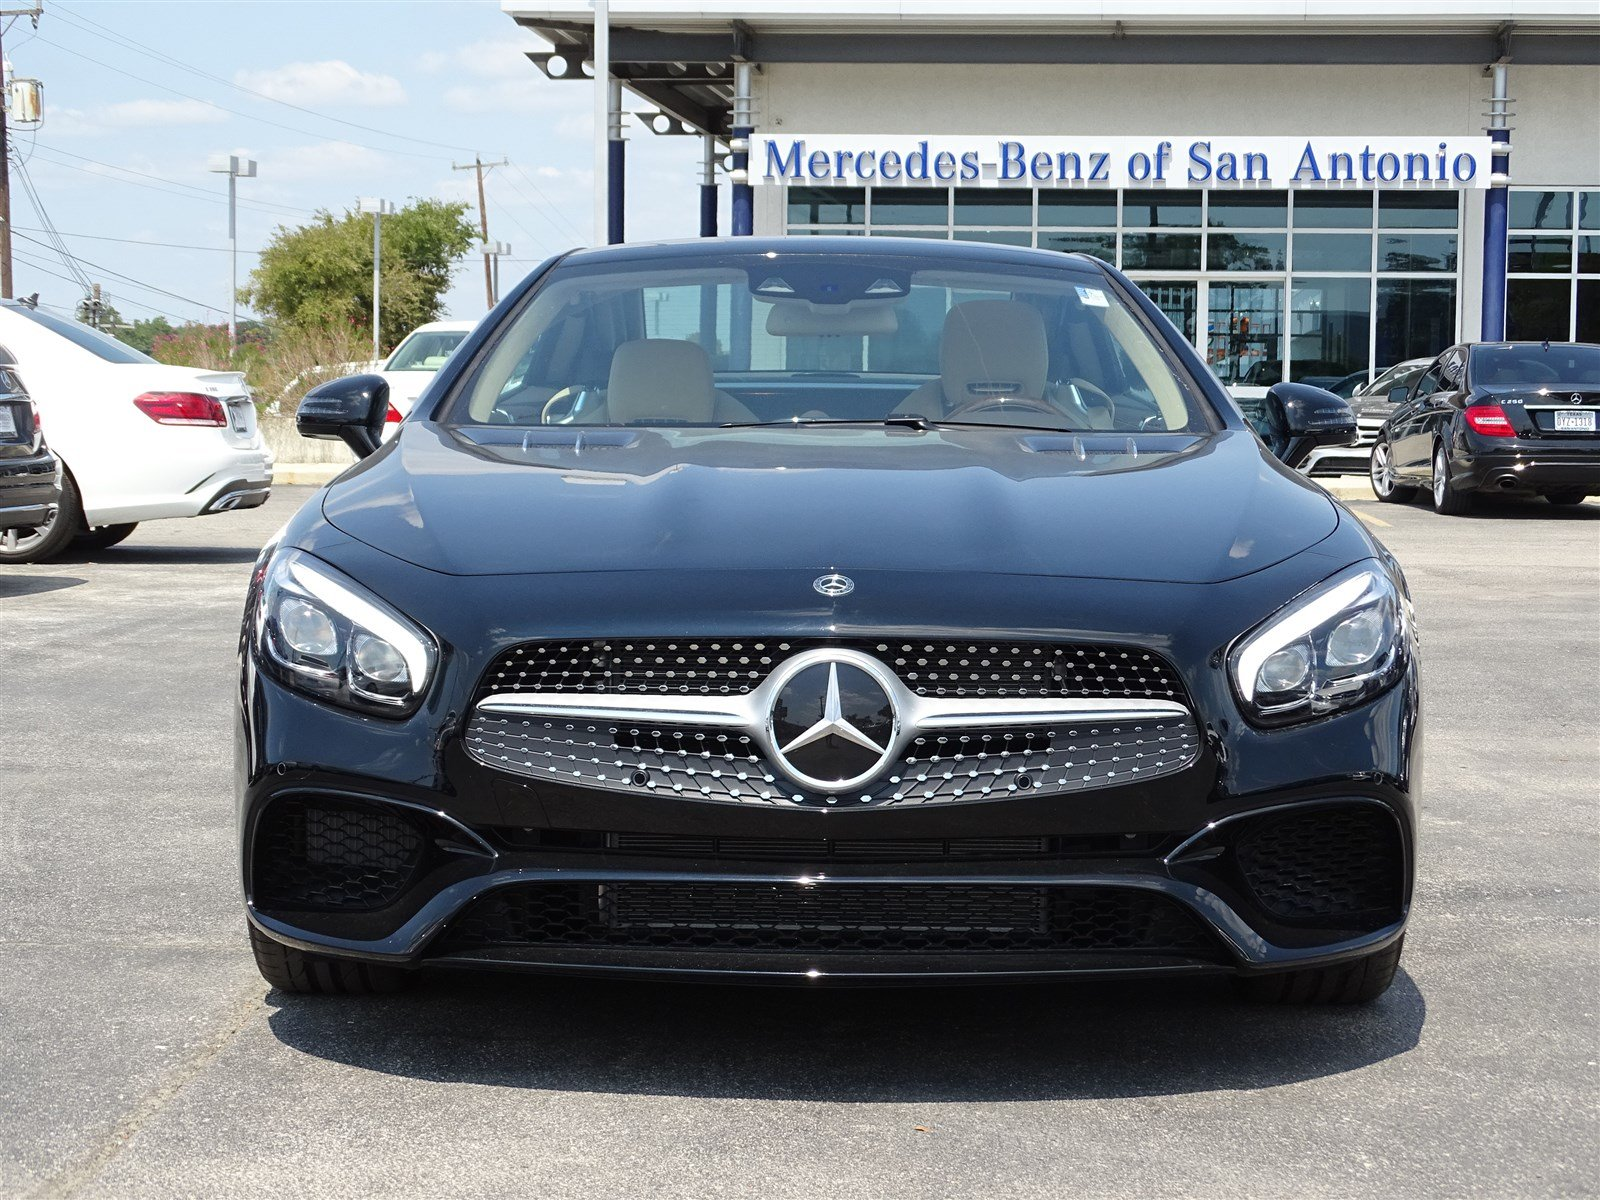 New 2018 mercedes benz sl sl 550 roadster in san antonio for Mercedes benz in san antonio